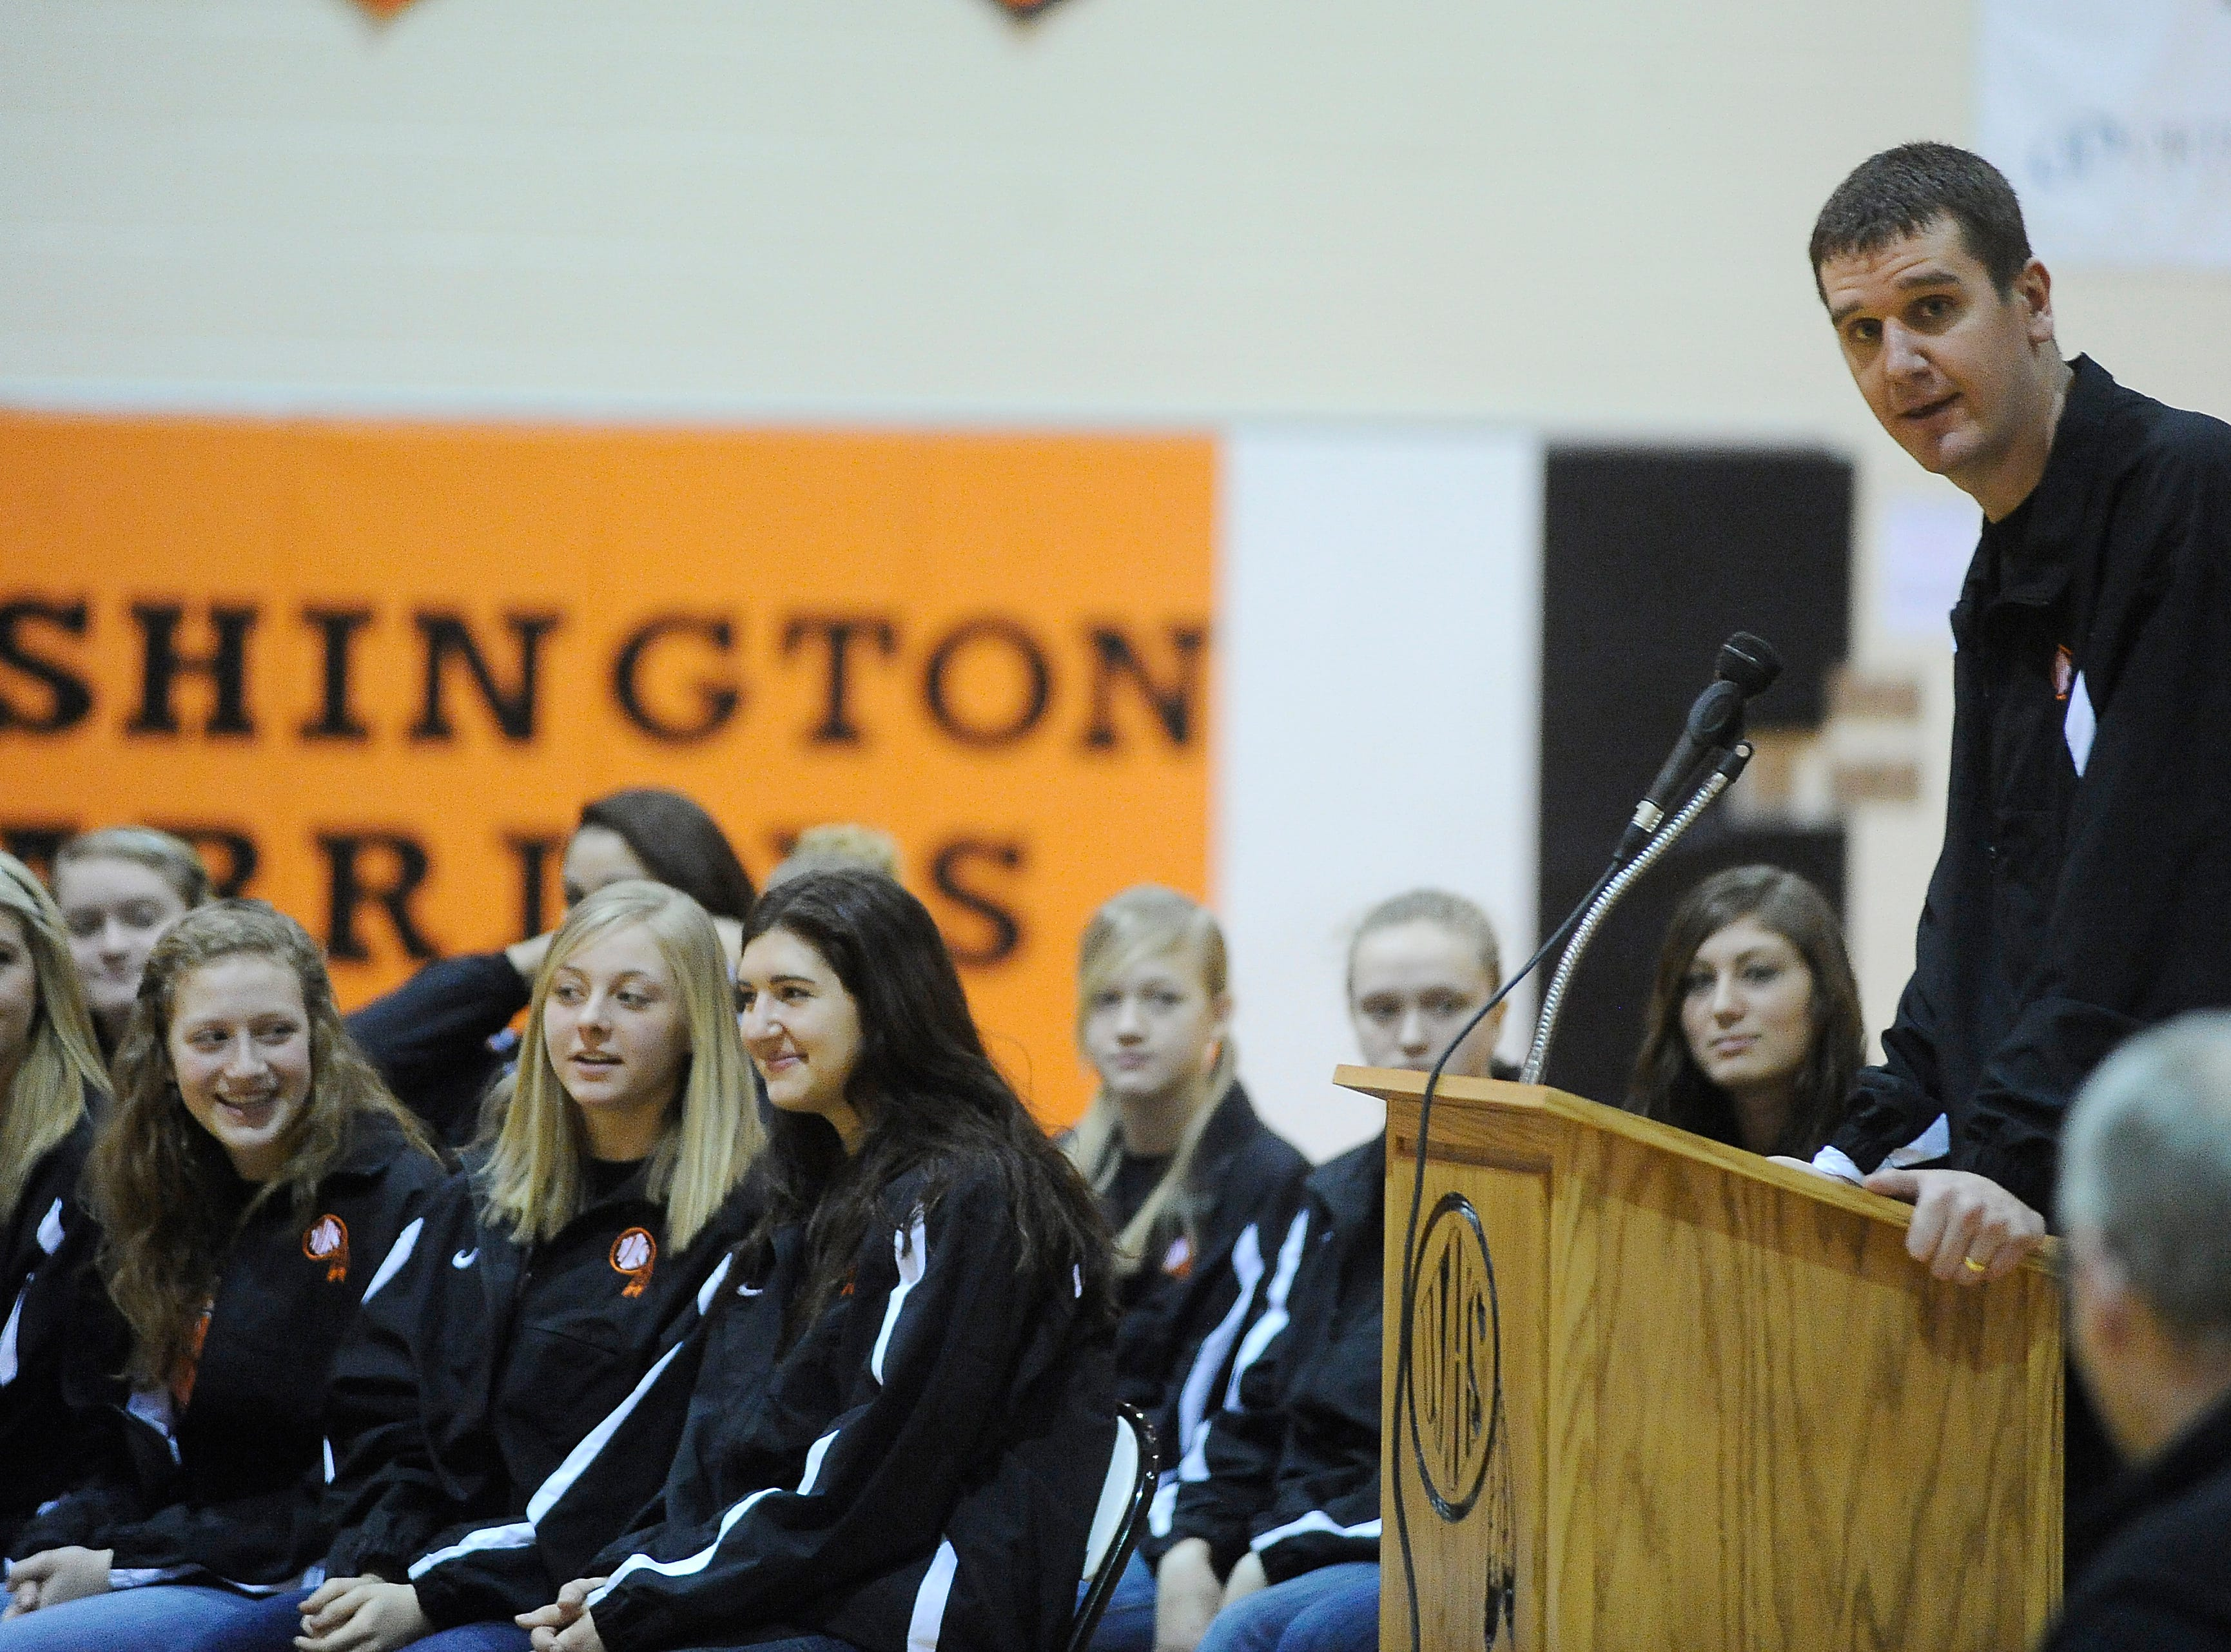 Girls basketball head coach, Nate Malchow says a few words at Sunday's Washington High School celebration after the girls basketball team won the state championship Saturday night.